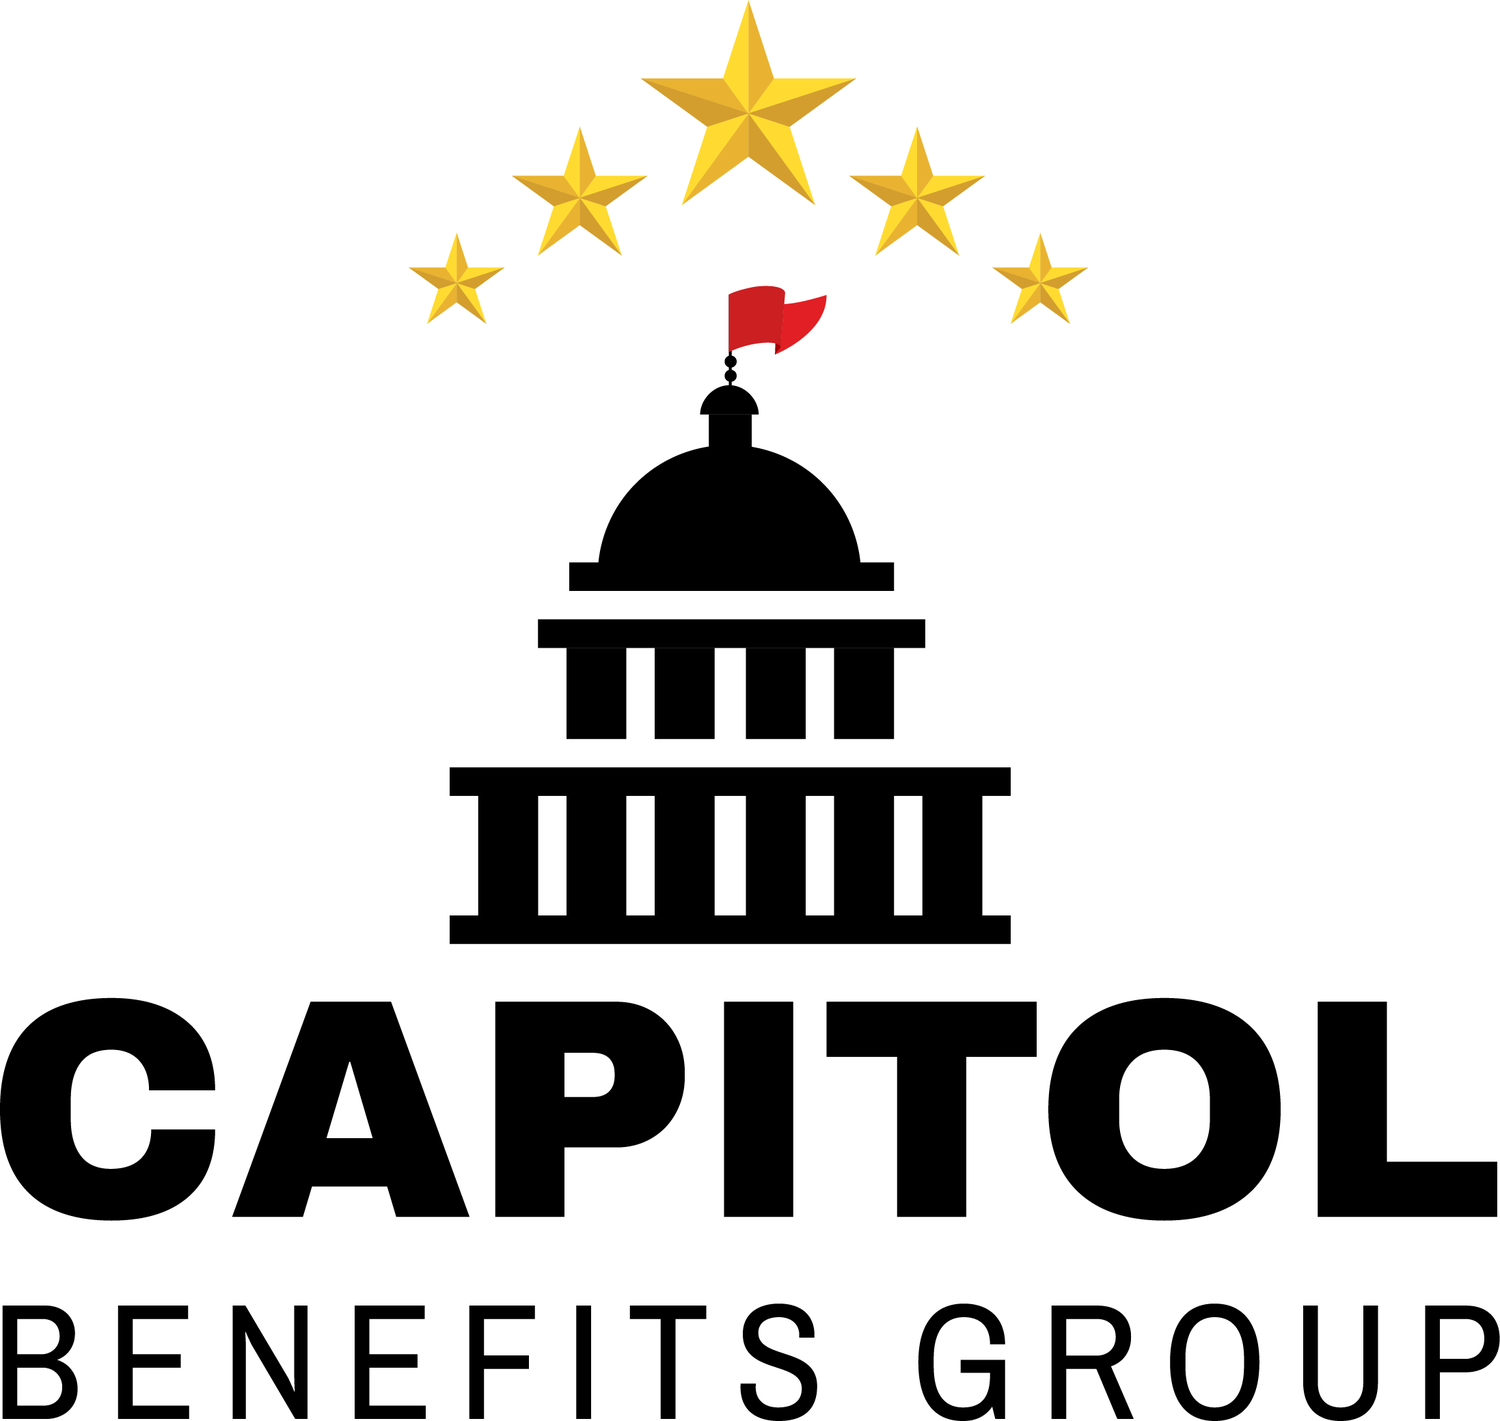 Capitol Benefits Group provides customized and products for your employee benefit needs.